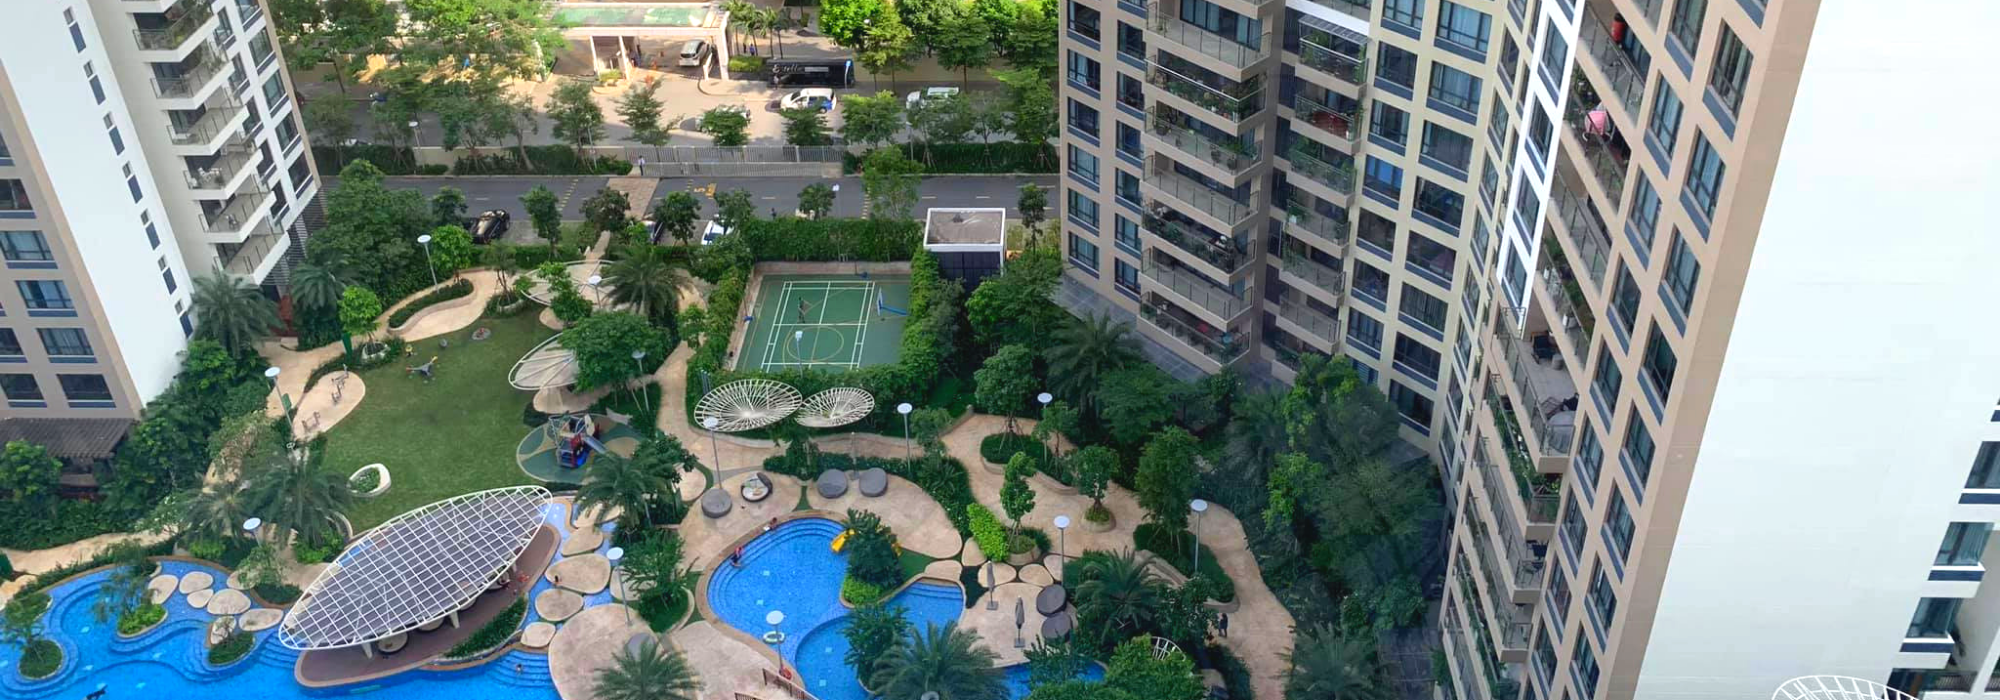 3 Bedroom Apartment, Estella Heights, Thao Dien, District 2, HCMC